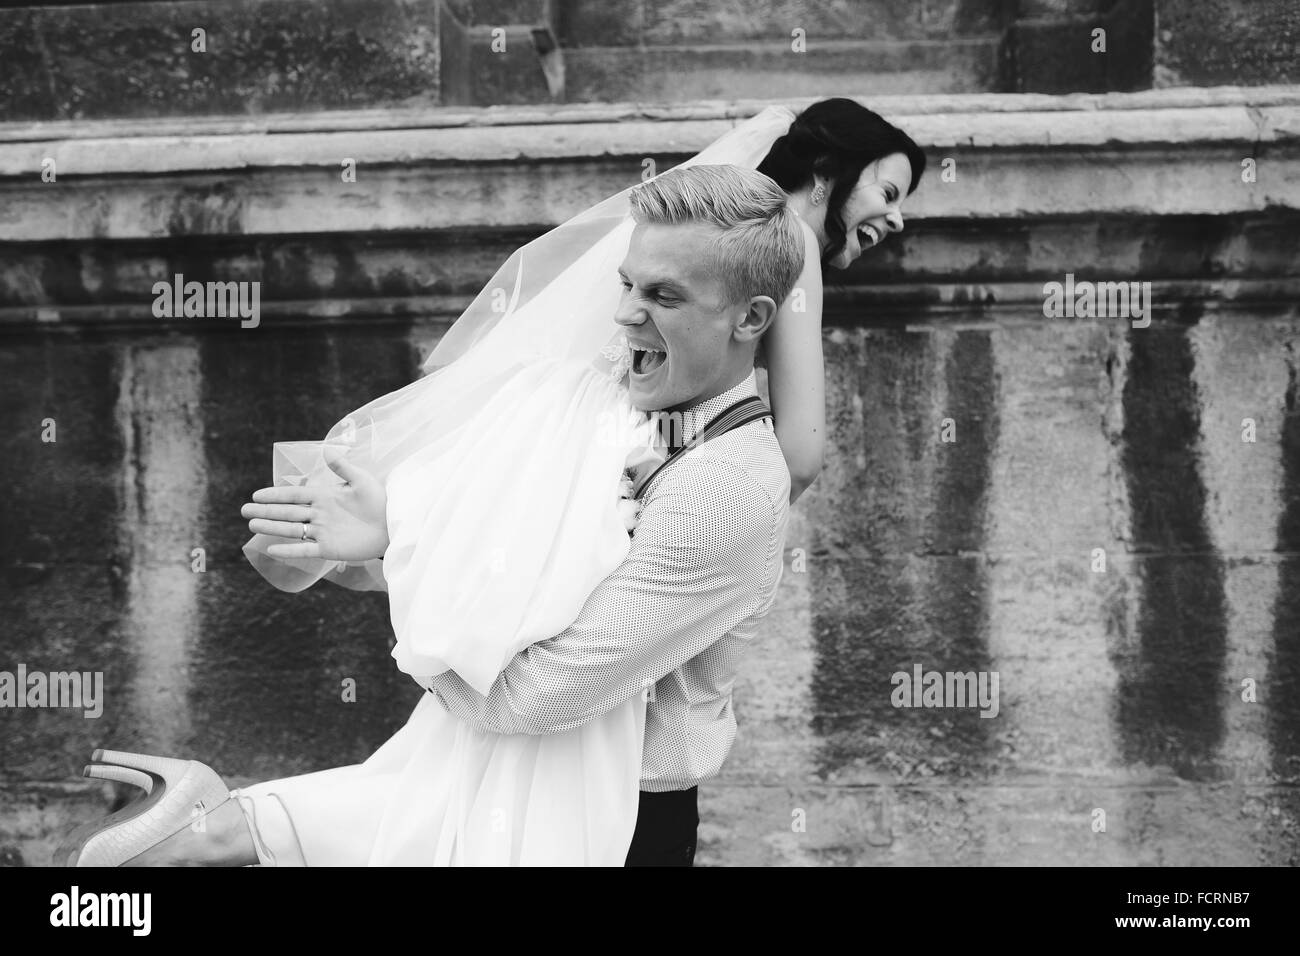 groom carries bride in his arms - Stock Image